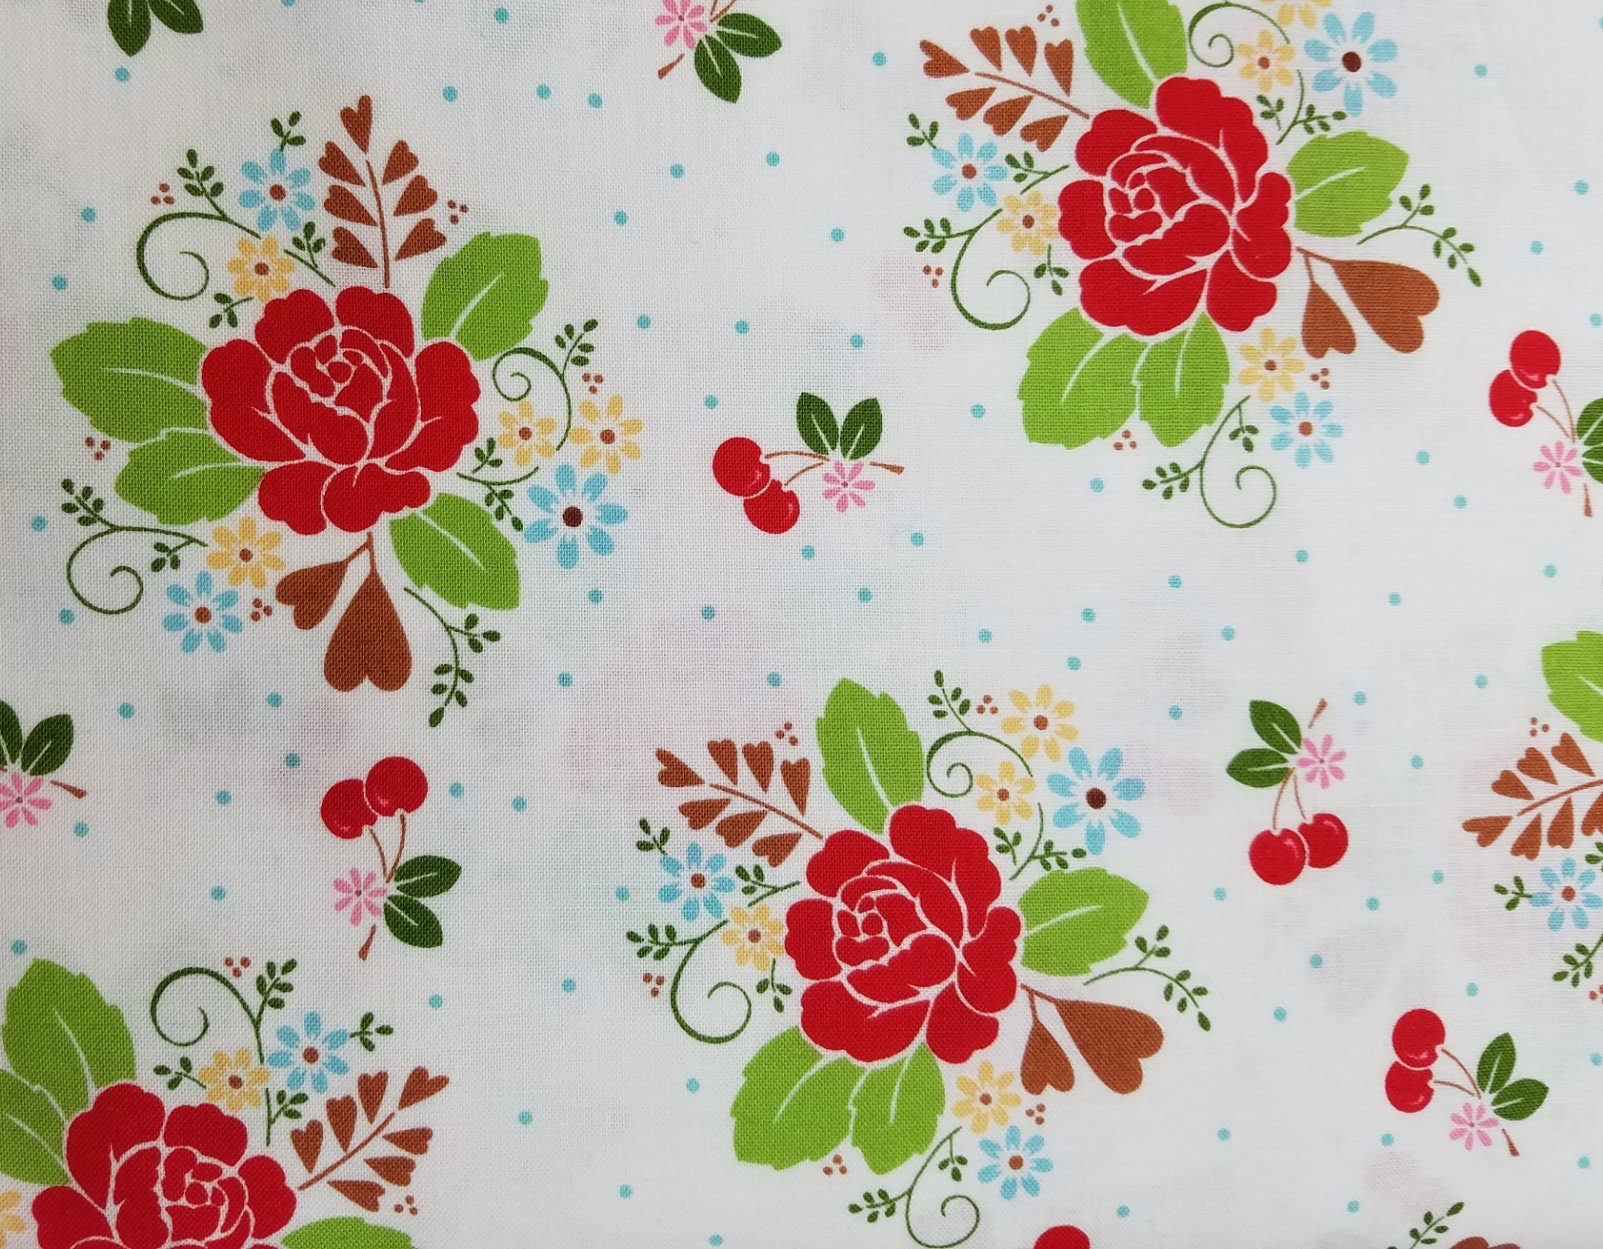 Sew Cherry 2 Floral